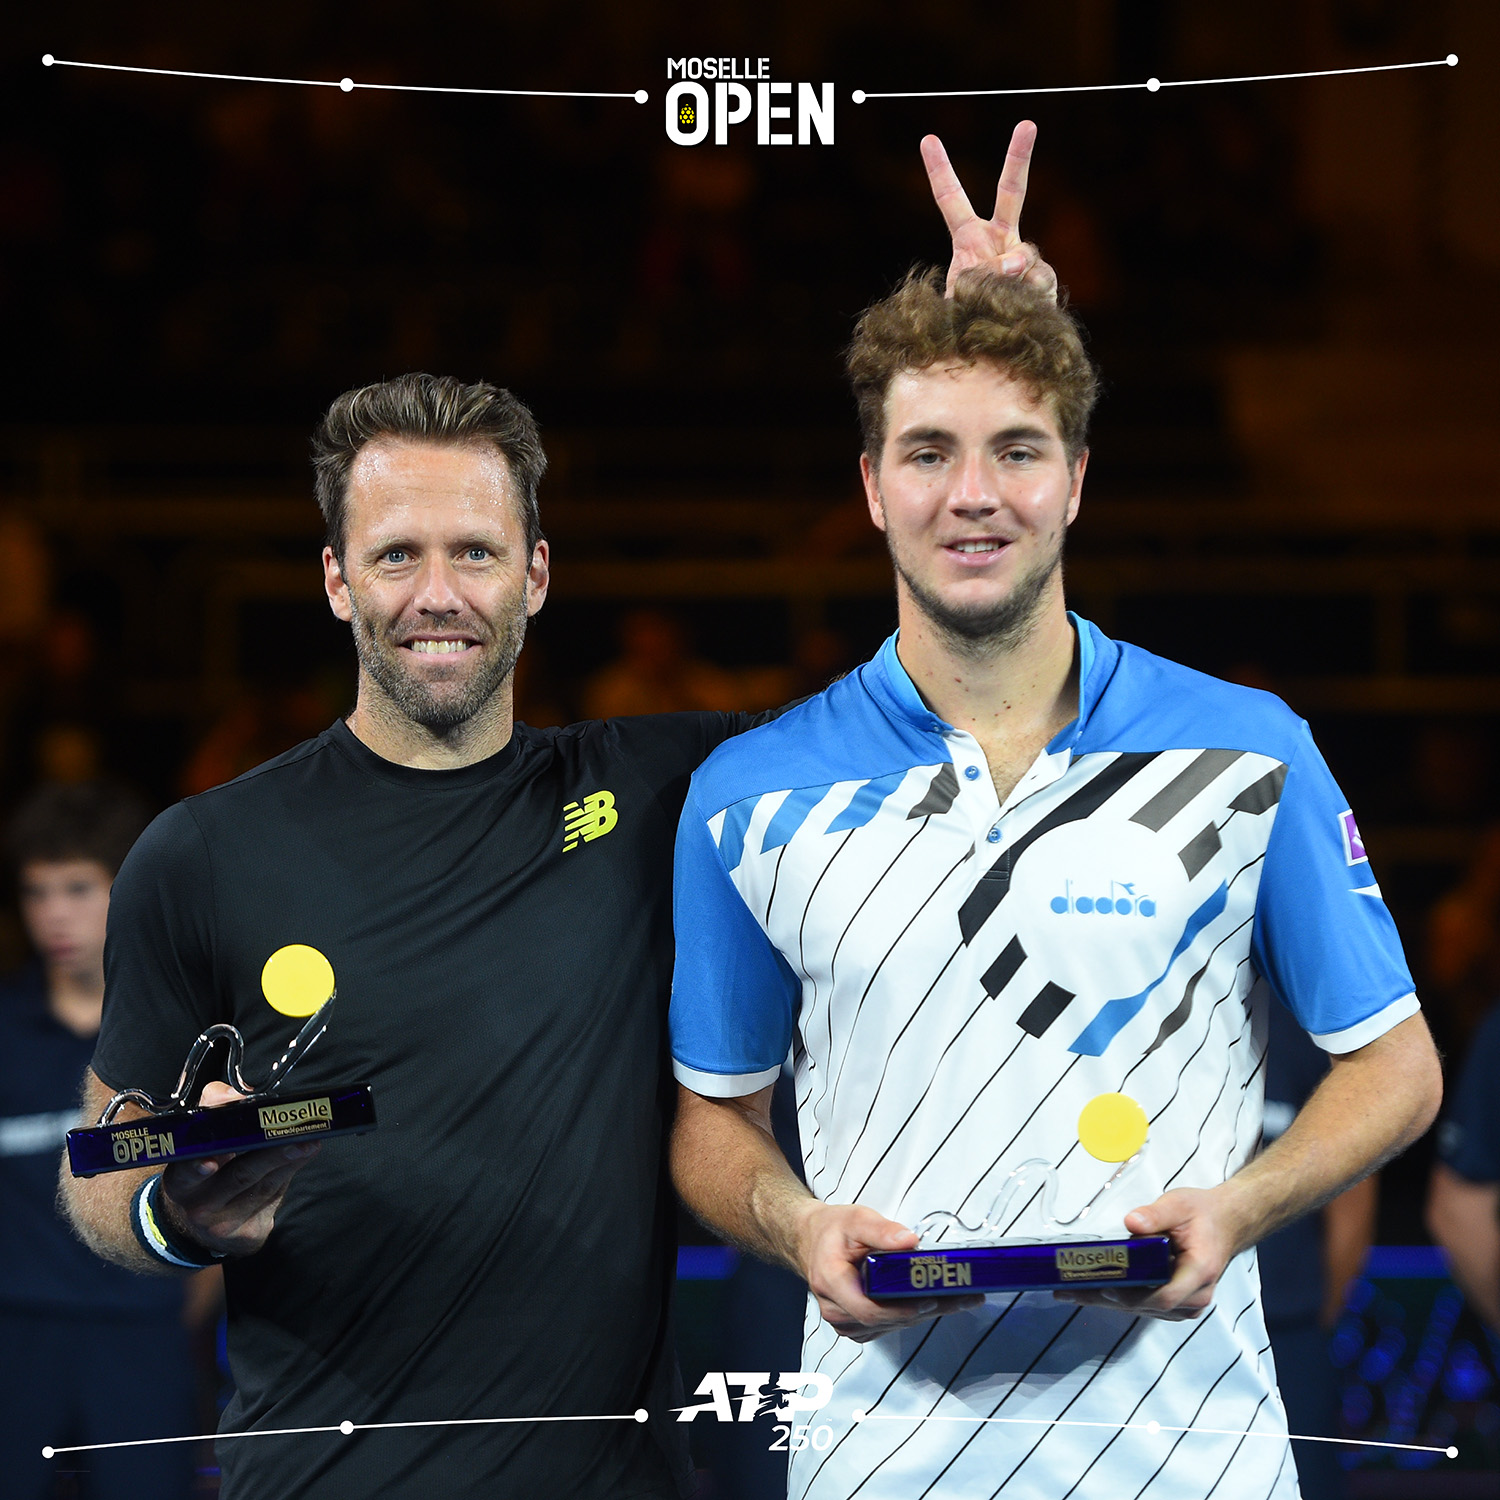 ATP MOSELLE 2019 - Page 4 Gagnants-lol